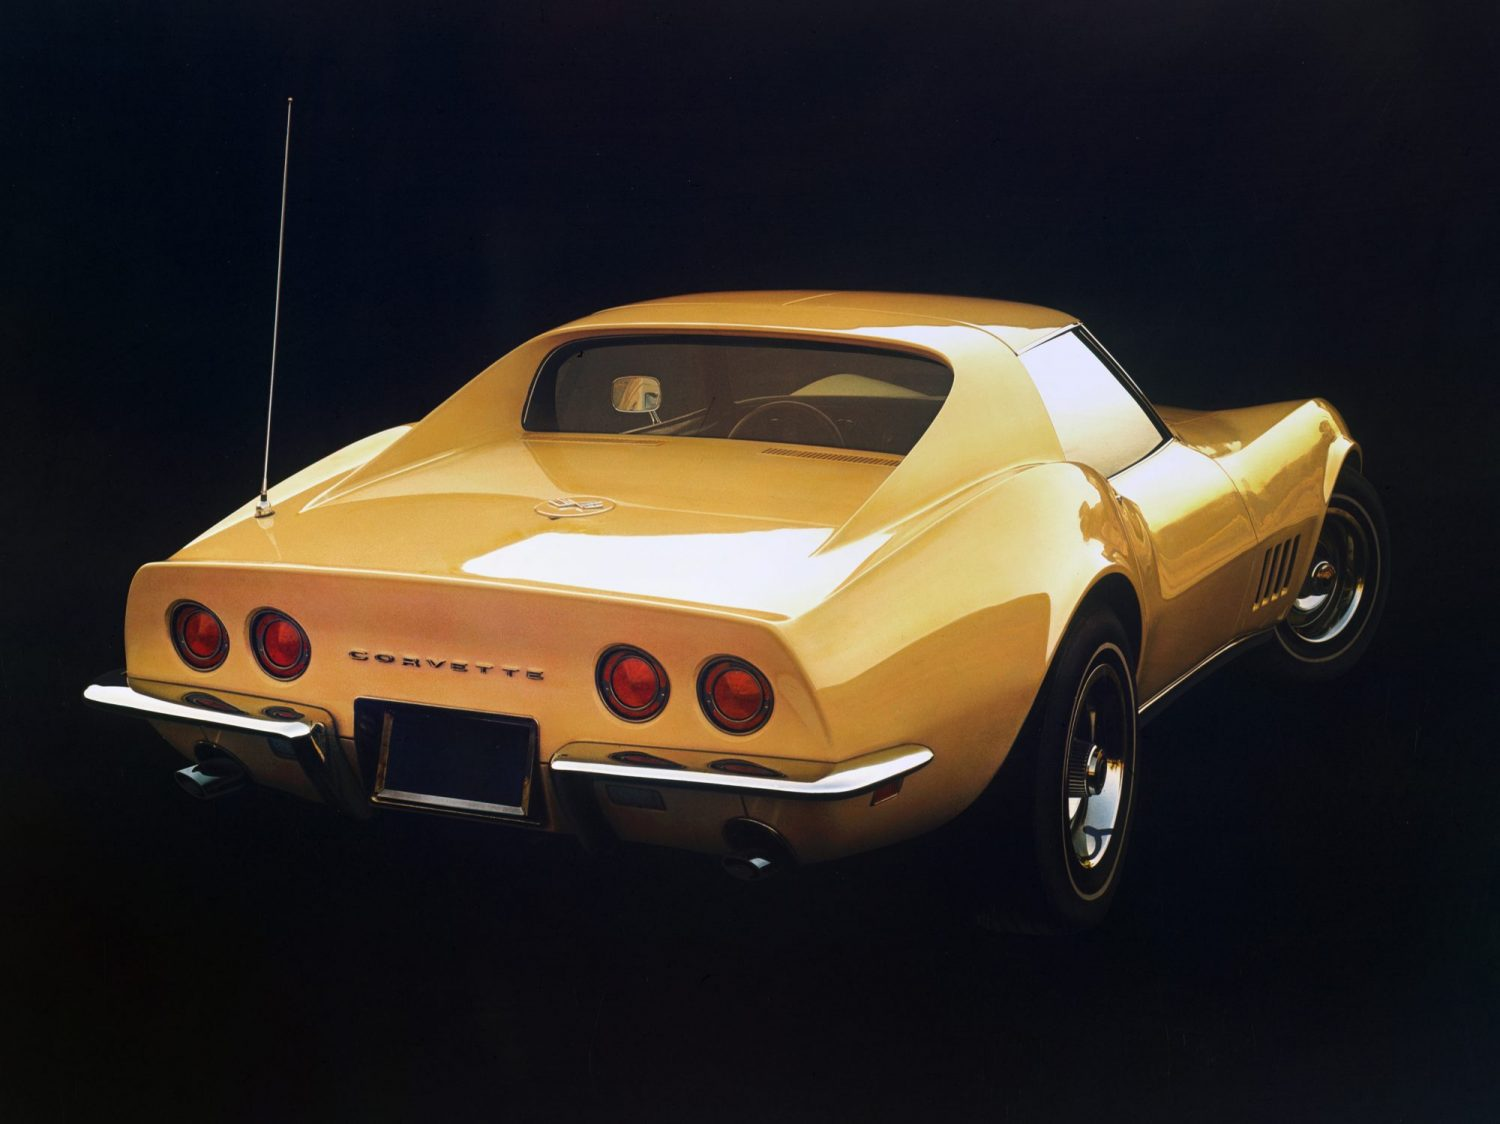 1968 Corvette Specs – National Corvette Museum